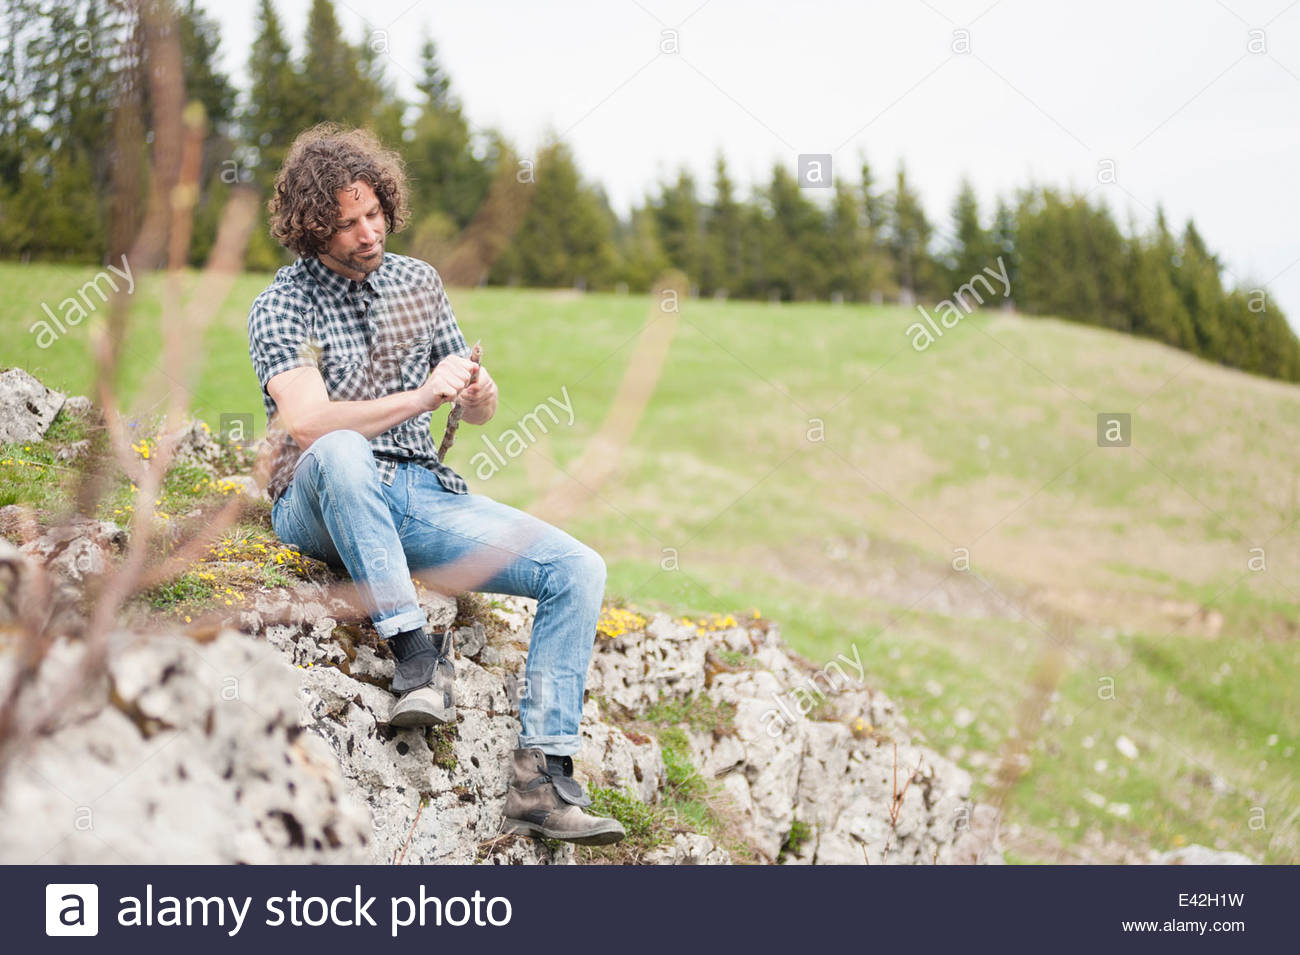 Mid adult man carving a stick with penknife, Wallberg, Tegernsee, Bavaria, Germany - Stock Image